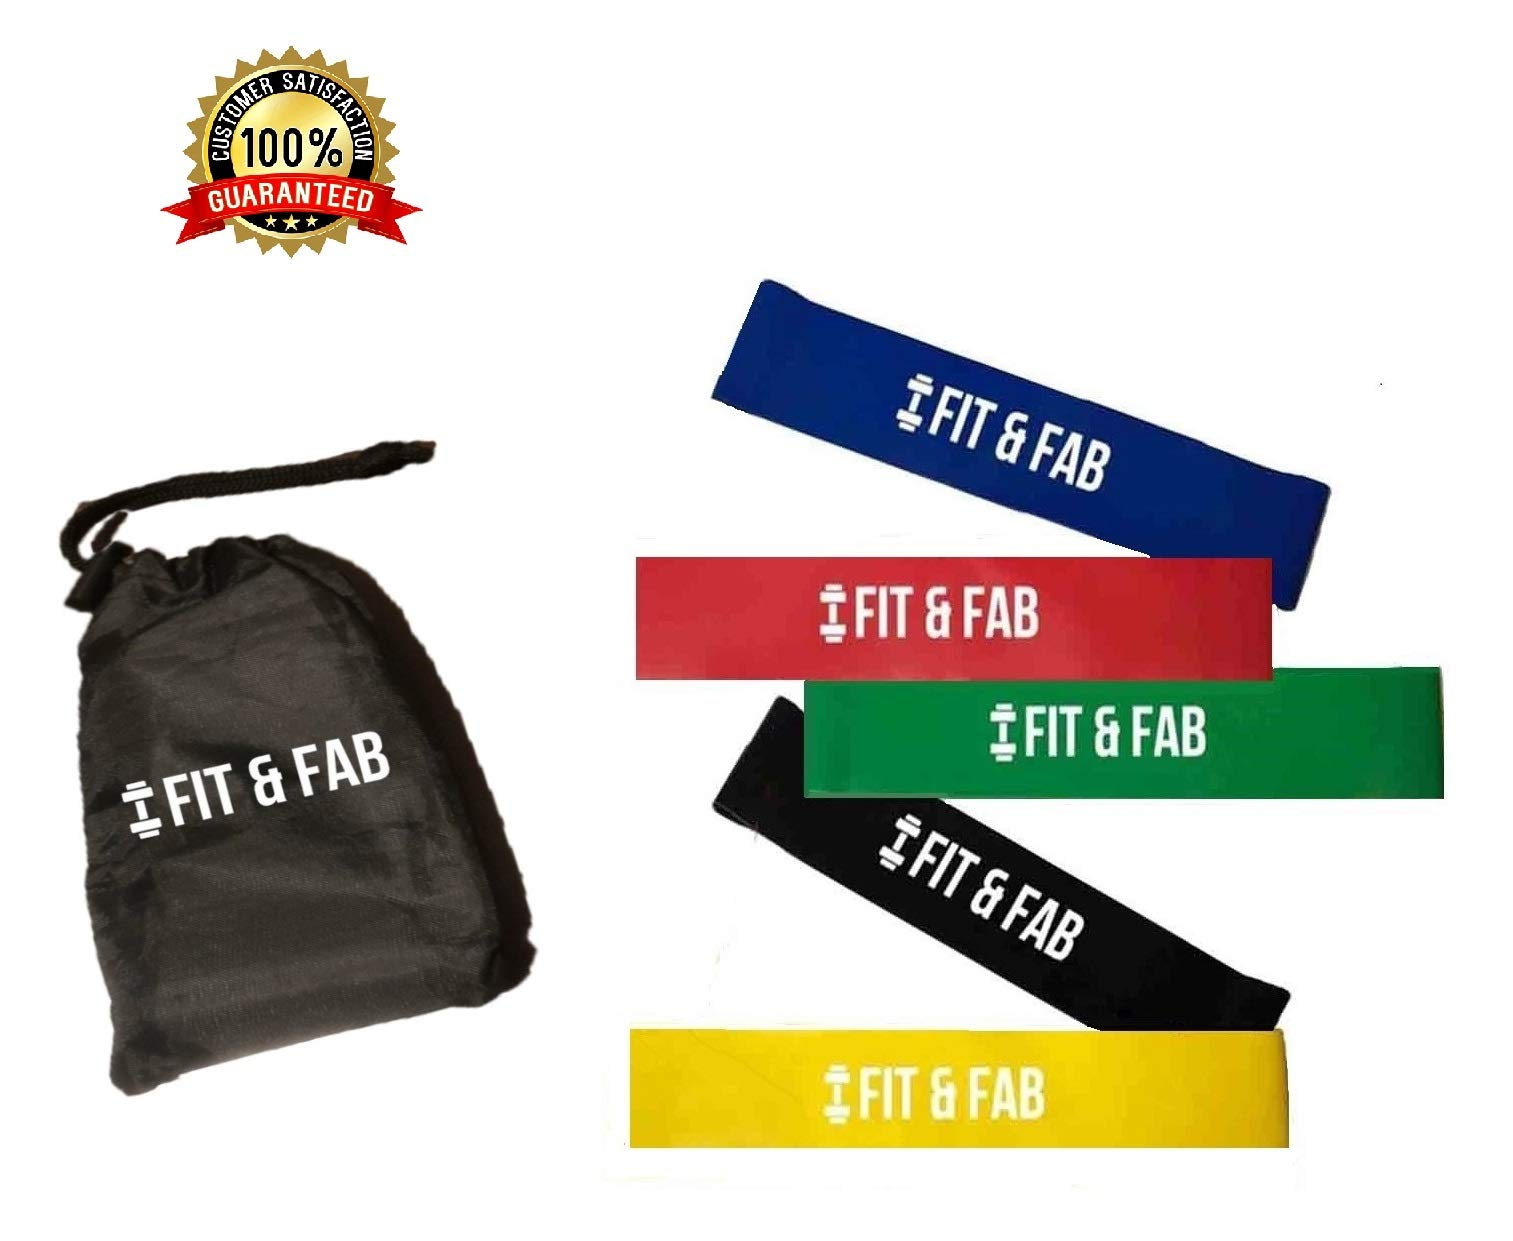 Resistance Exercise Bands - Set of 5 for Indoor Fitness, Body, Glutes, Leg, Yoga & Pilates Workouts. Uses Anti-Snap Tech. Includes Bands, FREE Carry Bag & Bonus Workout Tutorials, By Fit & Fab